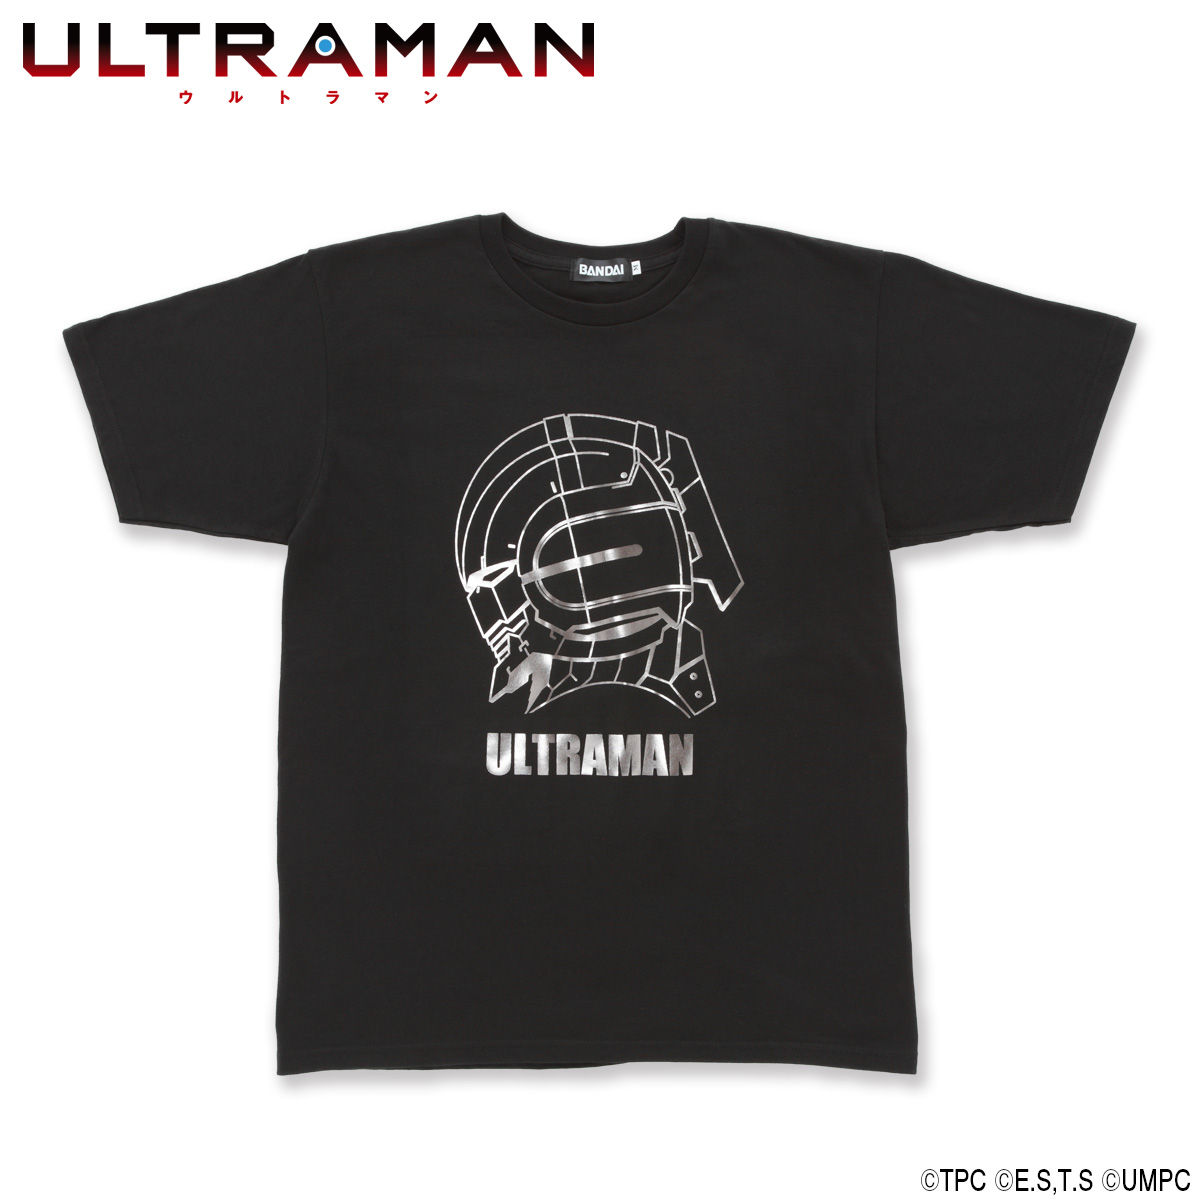 ULTRAMAN T-shirt - Ultraman ver.